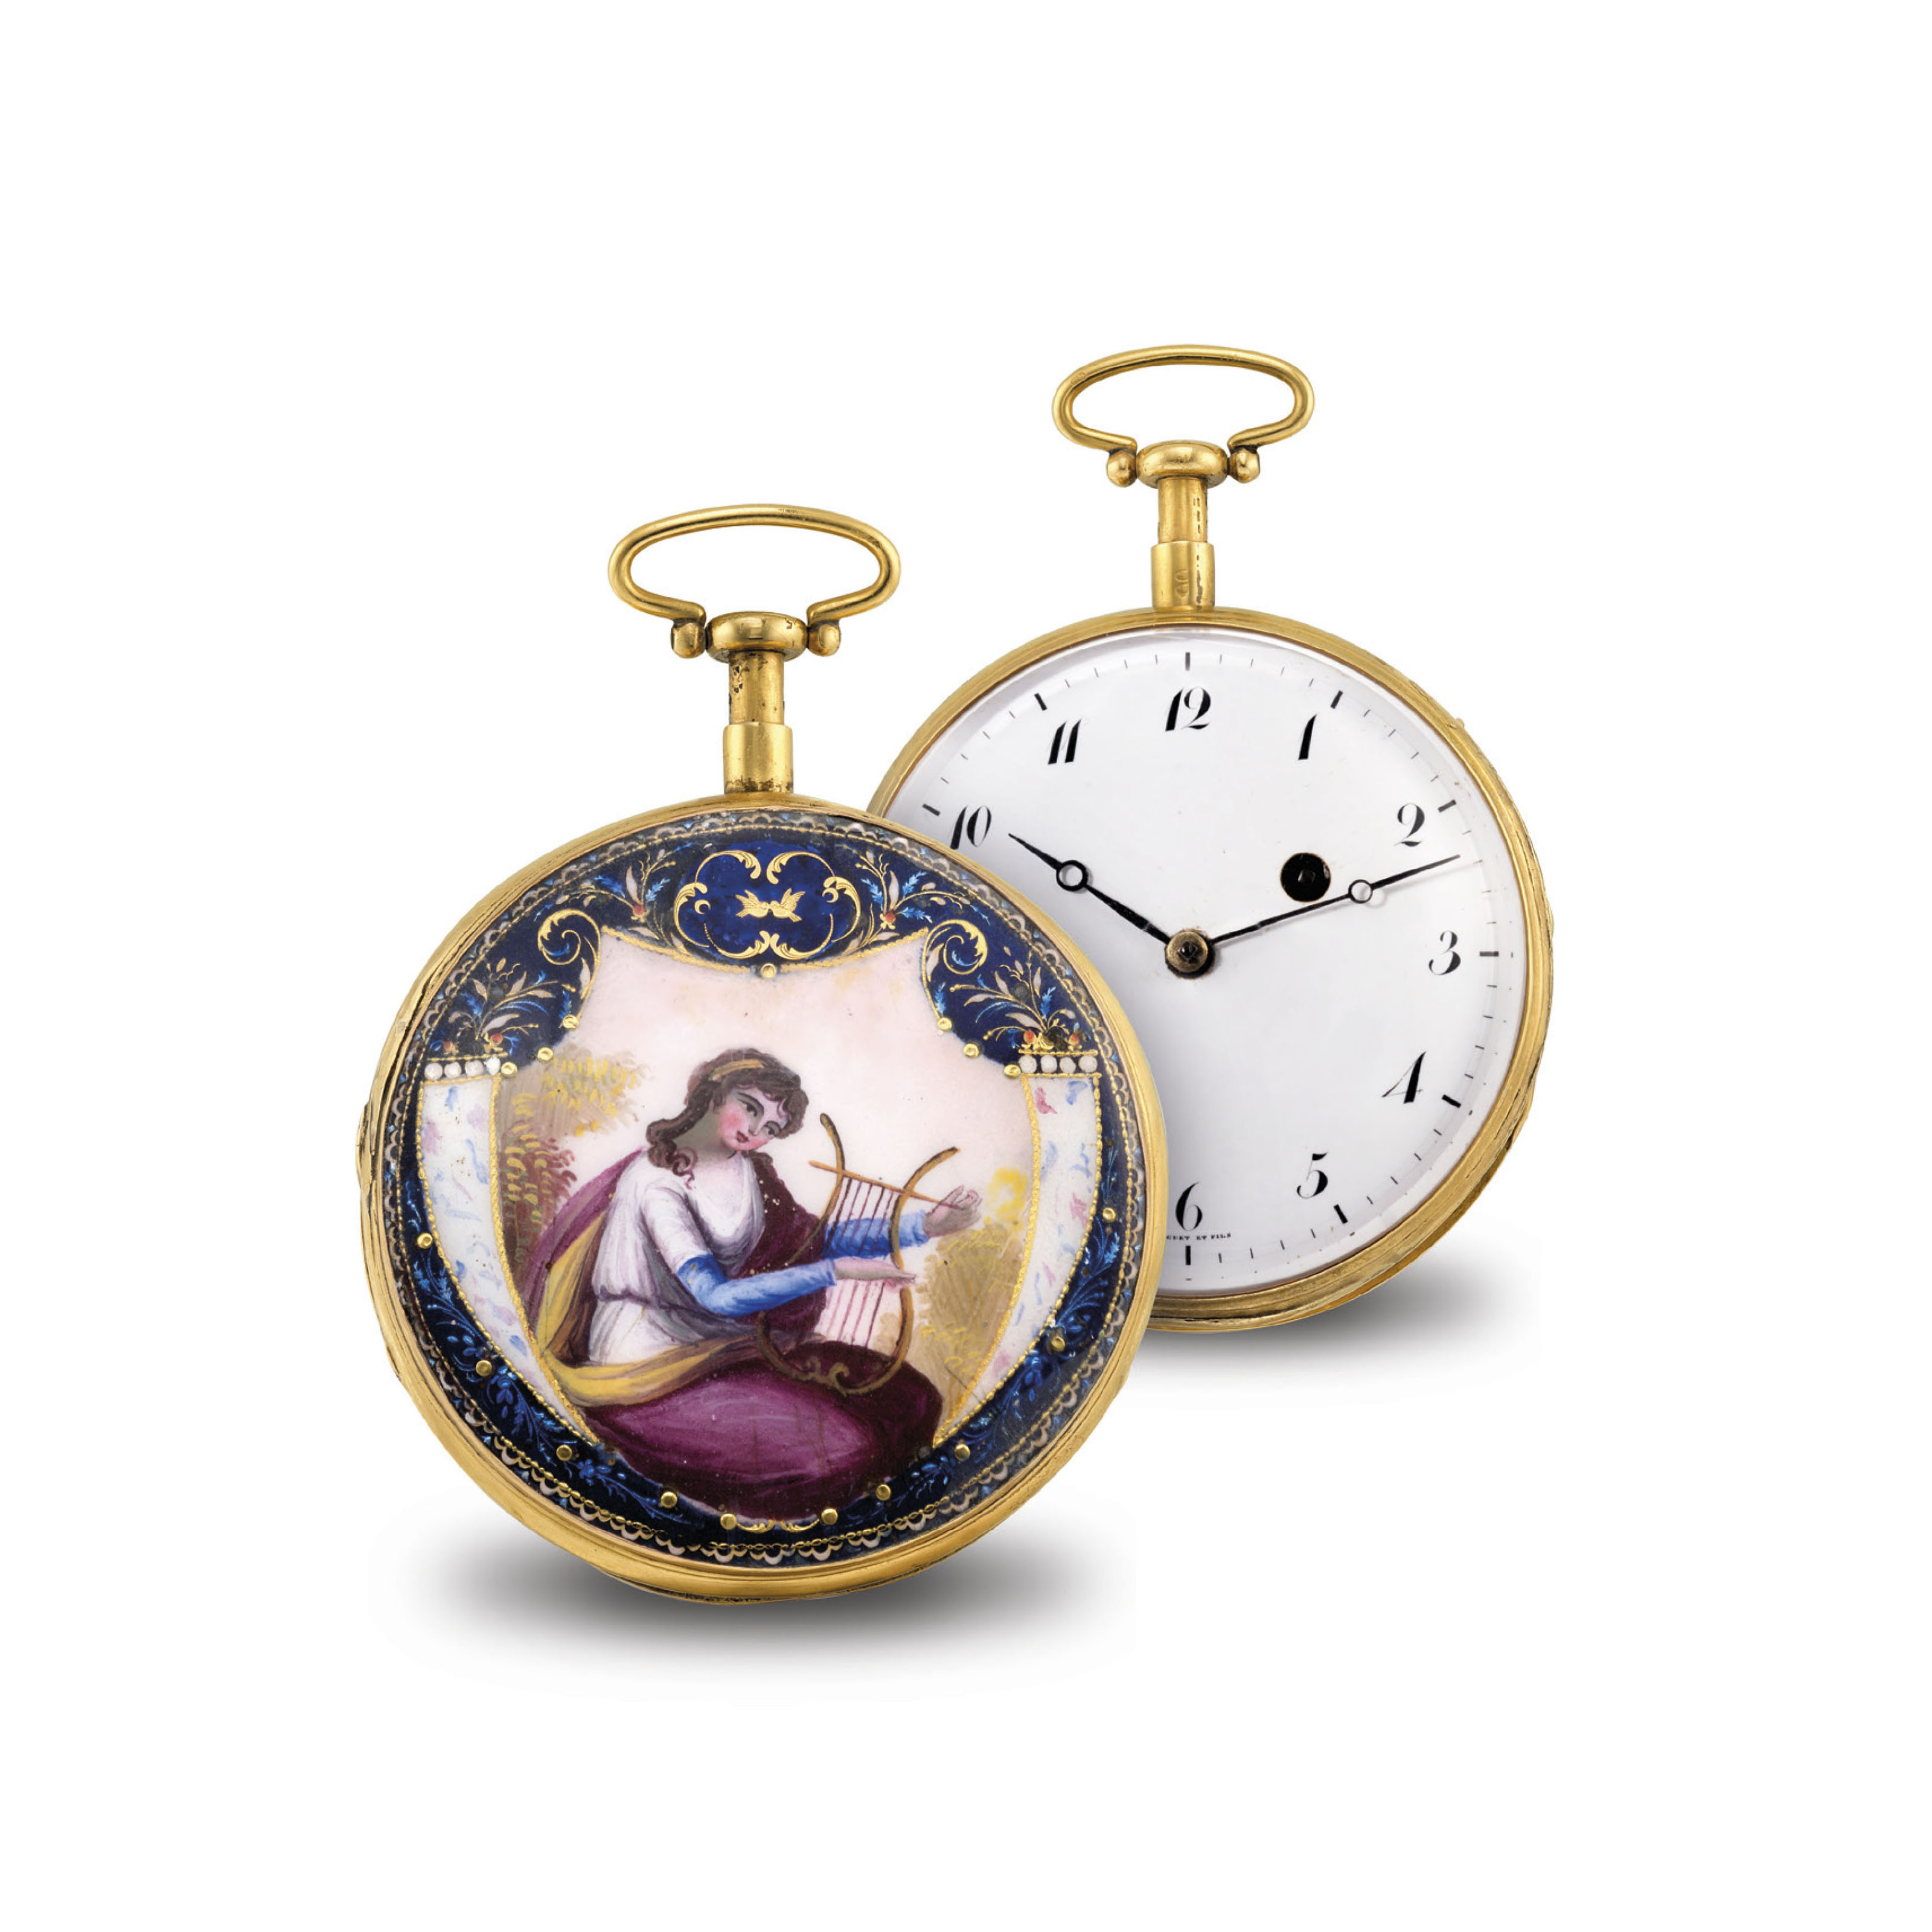 SWISS. A GOLD AND ENAMEL OPENF